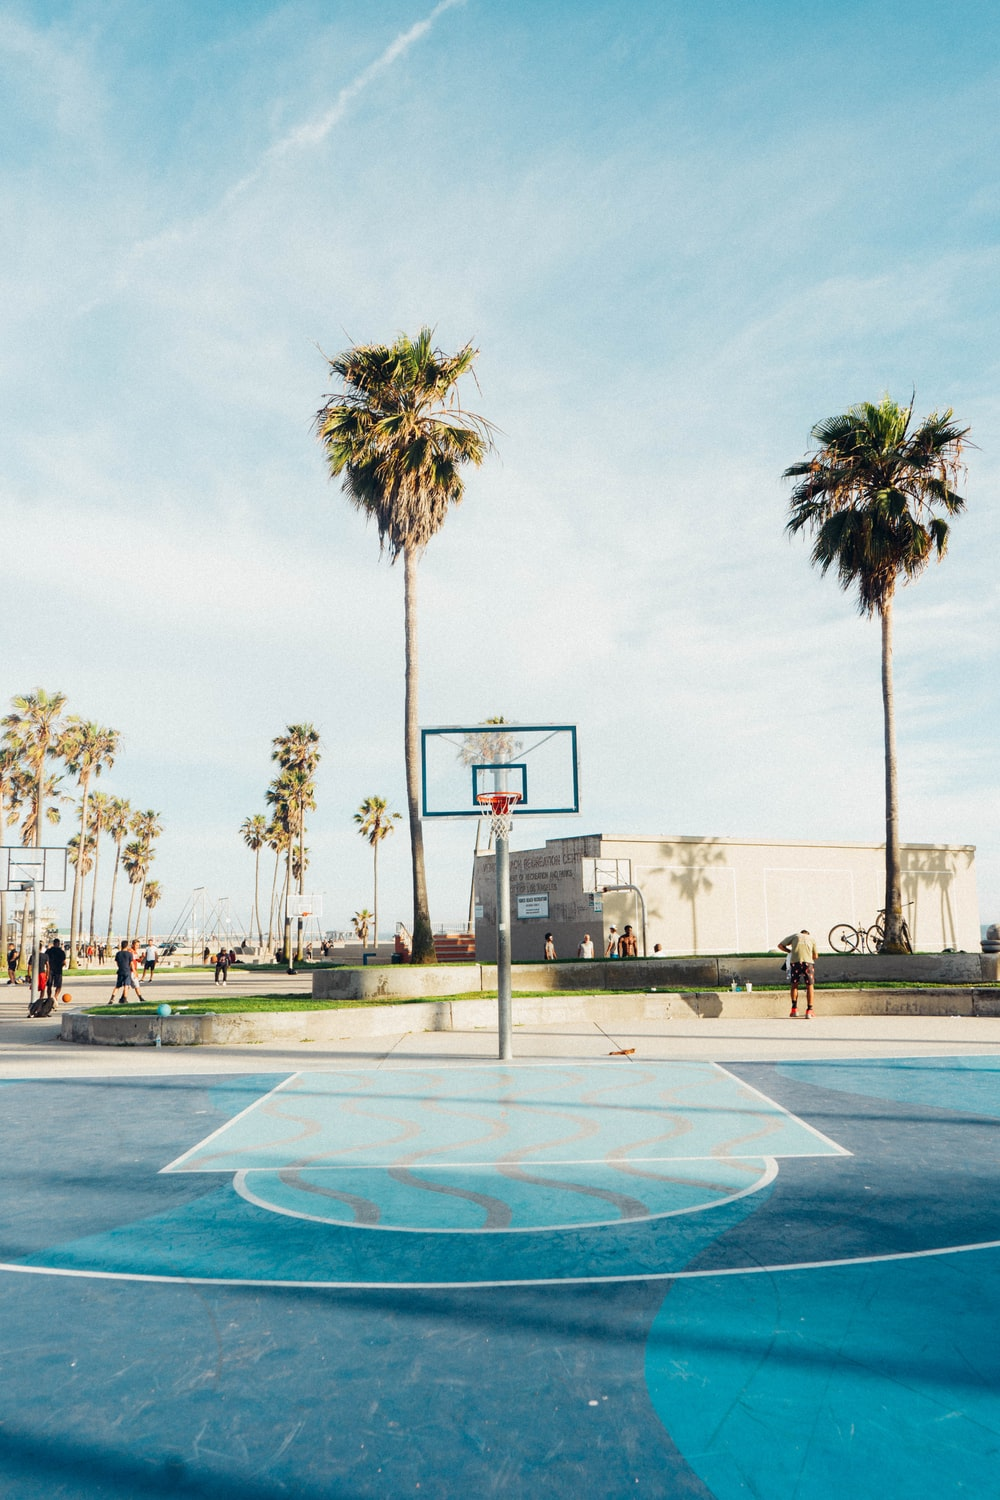 people outside outdoor basketball court